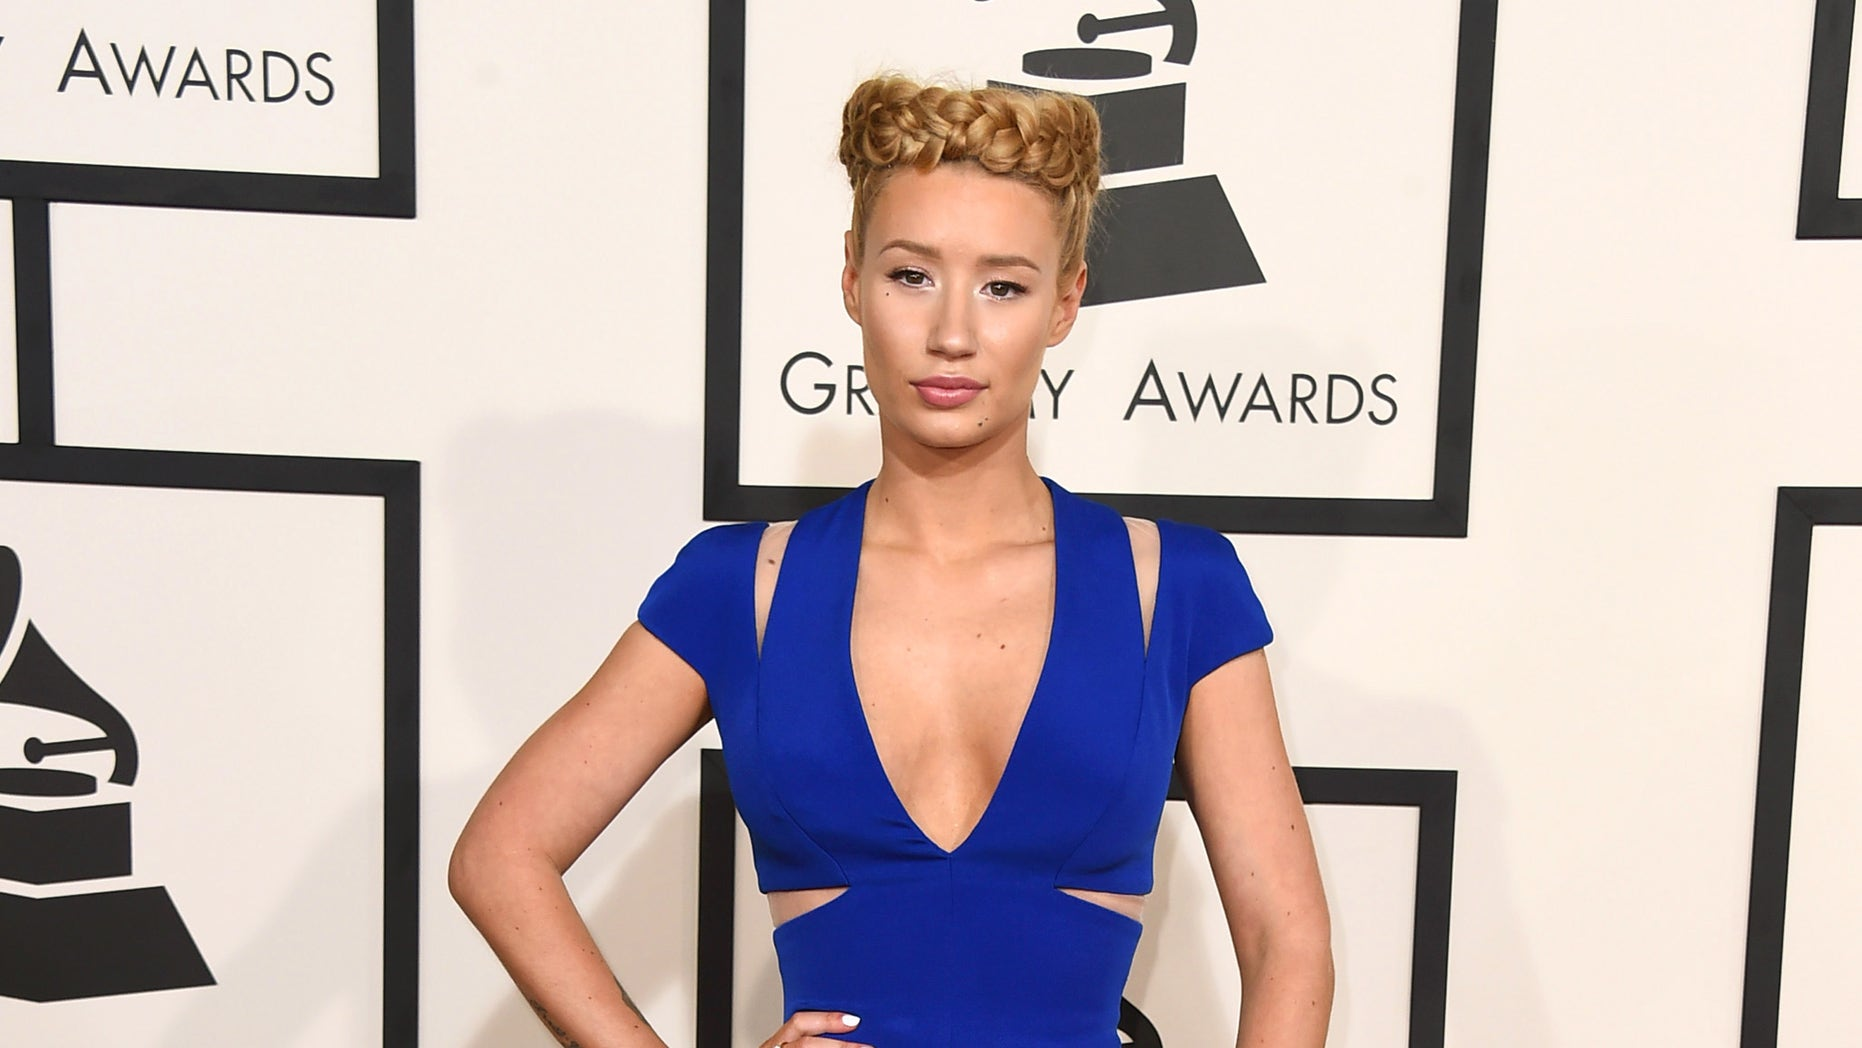 Iggy Azalea arrives at the 57th annual Grammy Awards at the Staples Center on Sunday, Feb. 8, 2015, in Los Angeles. (Photo by Jordan Strauss/Invision/AP)